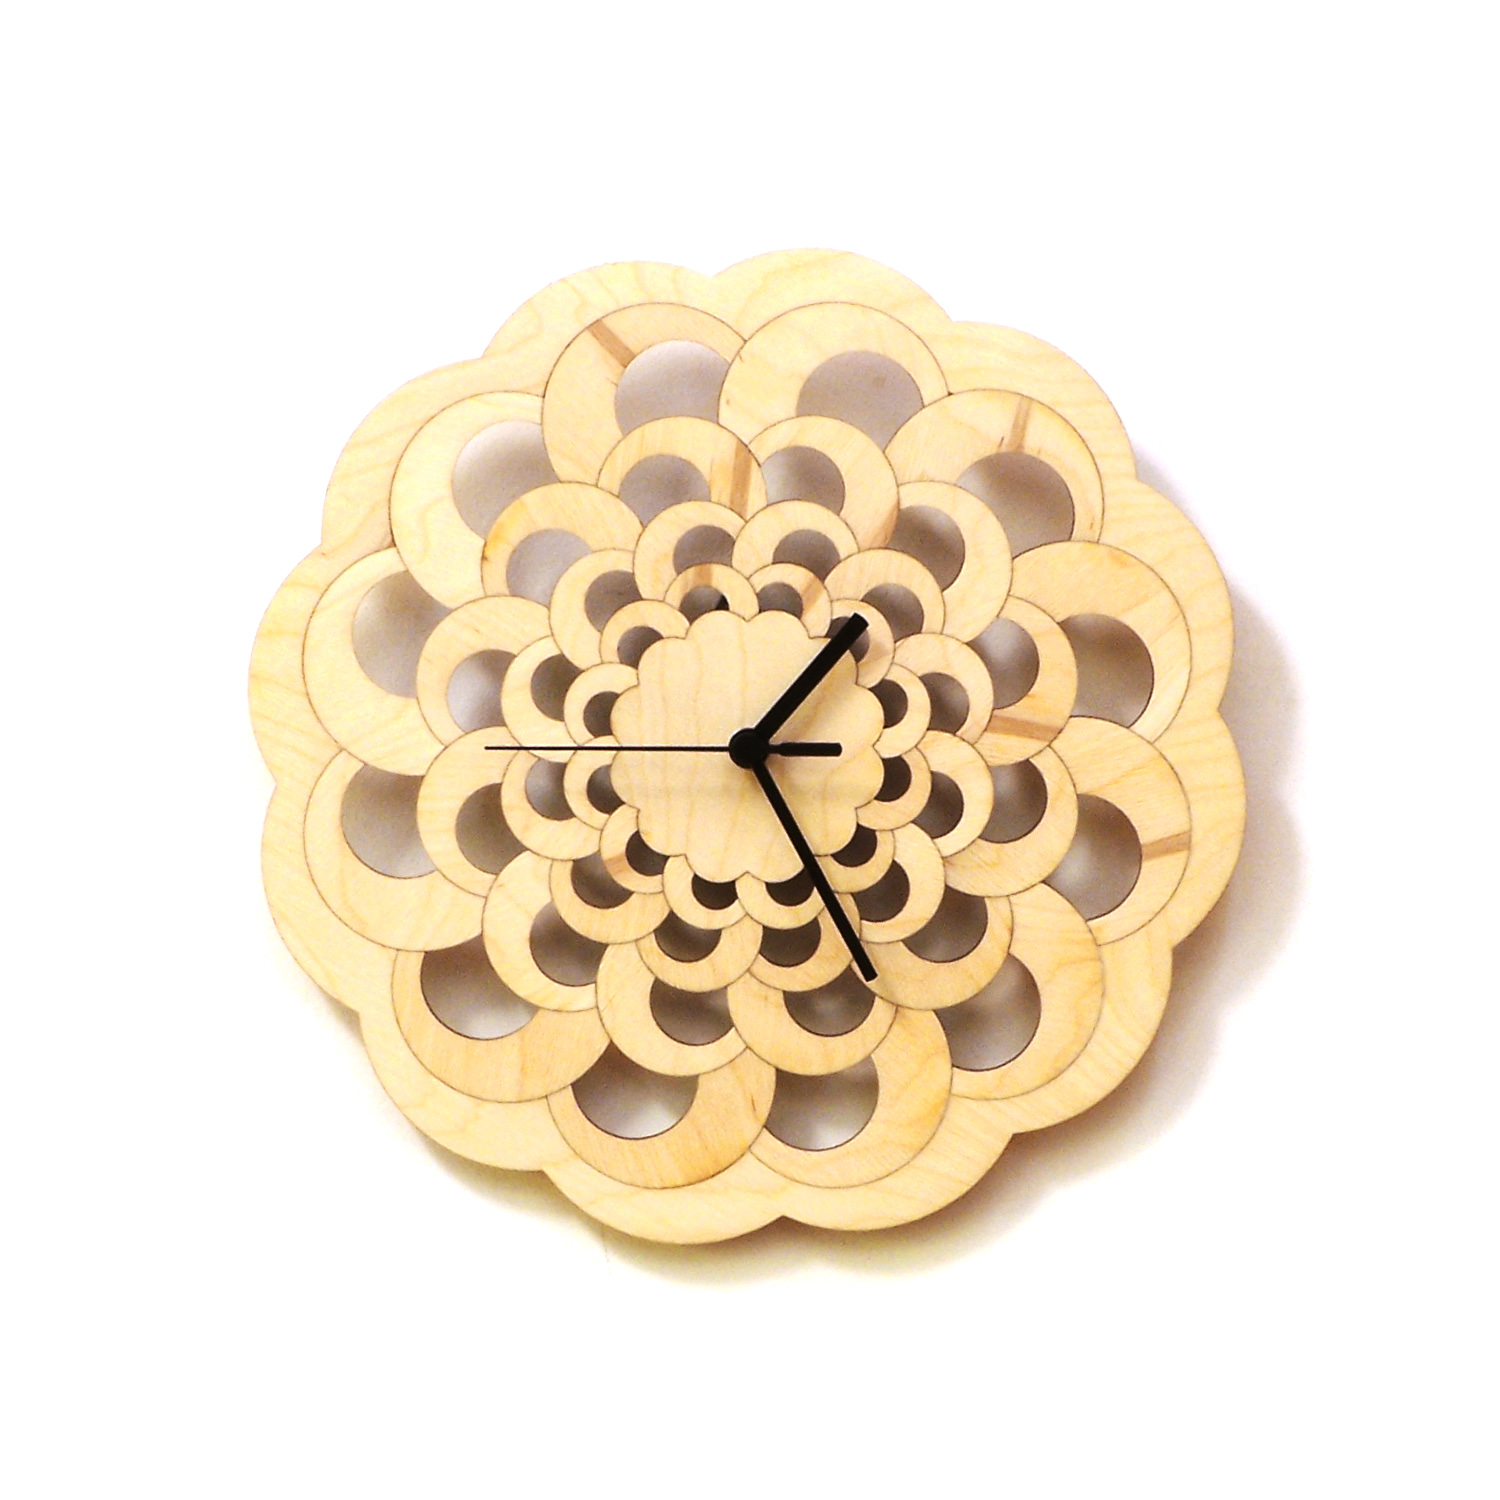 stylish wall clocks online image collections